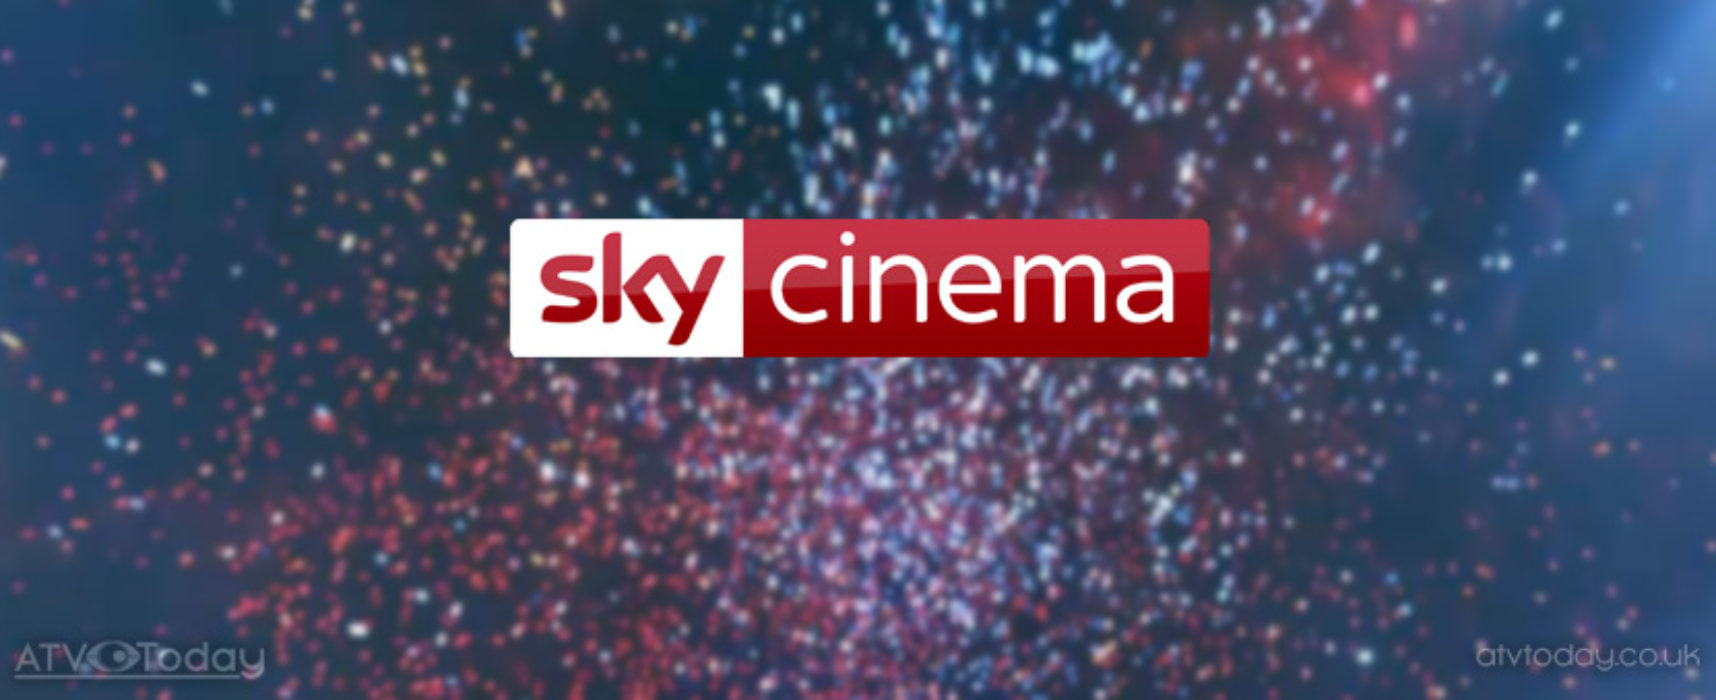 Bespoke animation focused Sky Cinema channel to launch